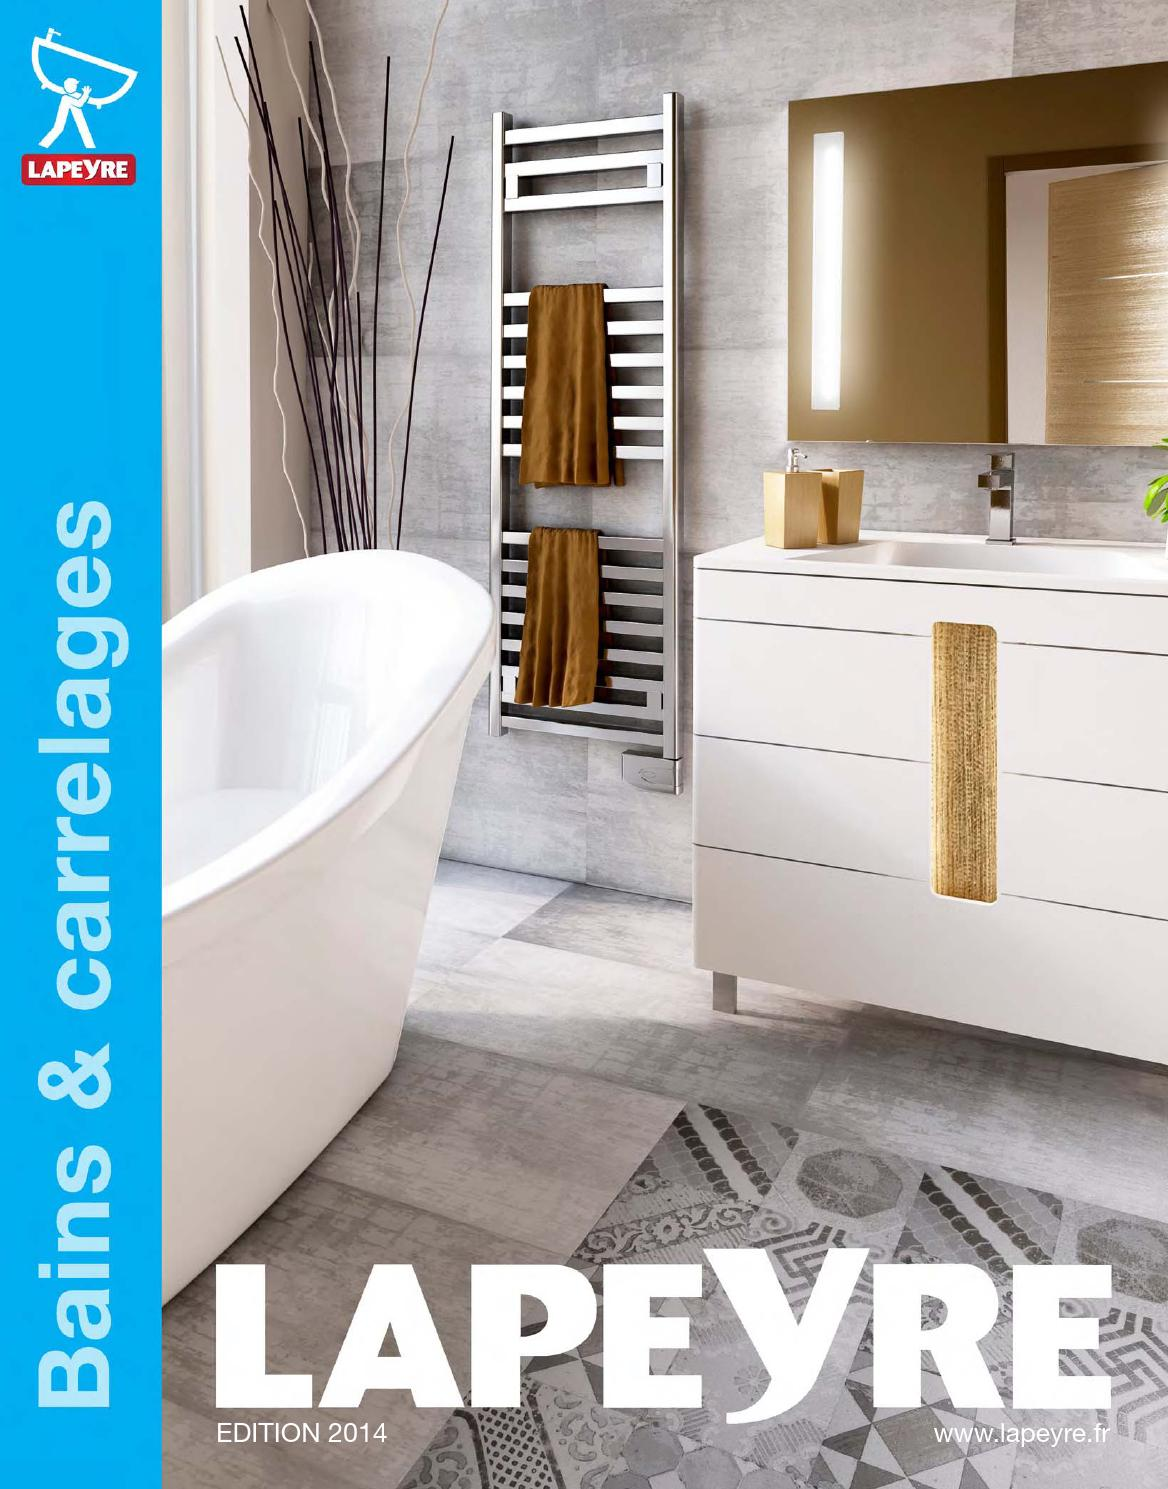 catalogue lapeyre bains carrelages 2014 by joe monroe. Black Bedroom Furniture Sets. Home Design Ideas